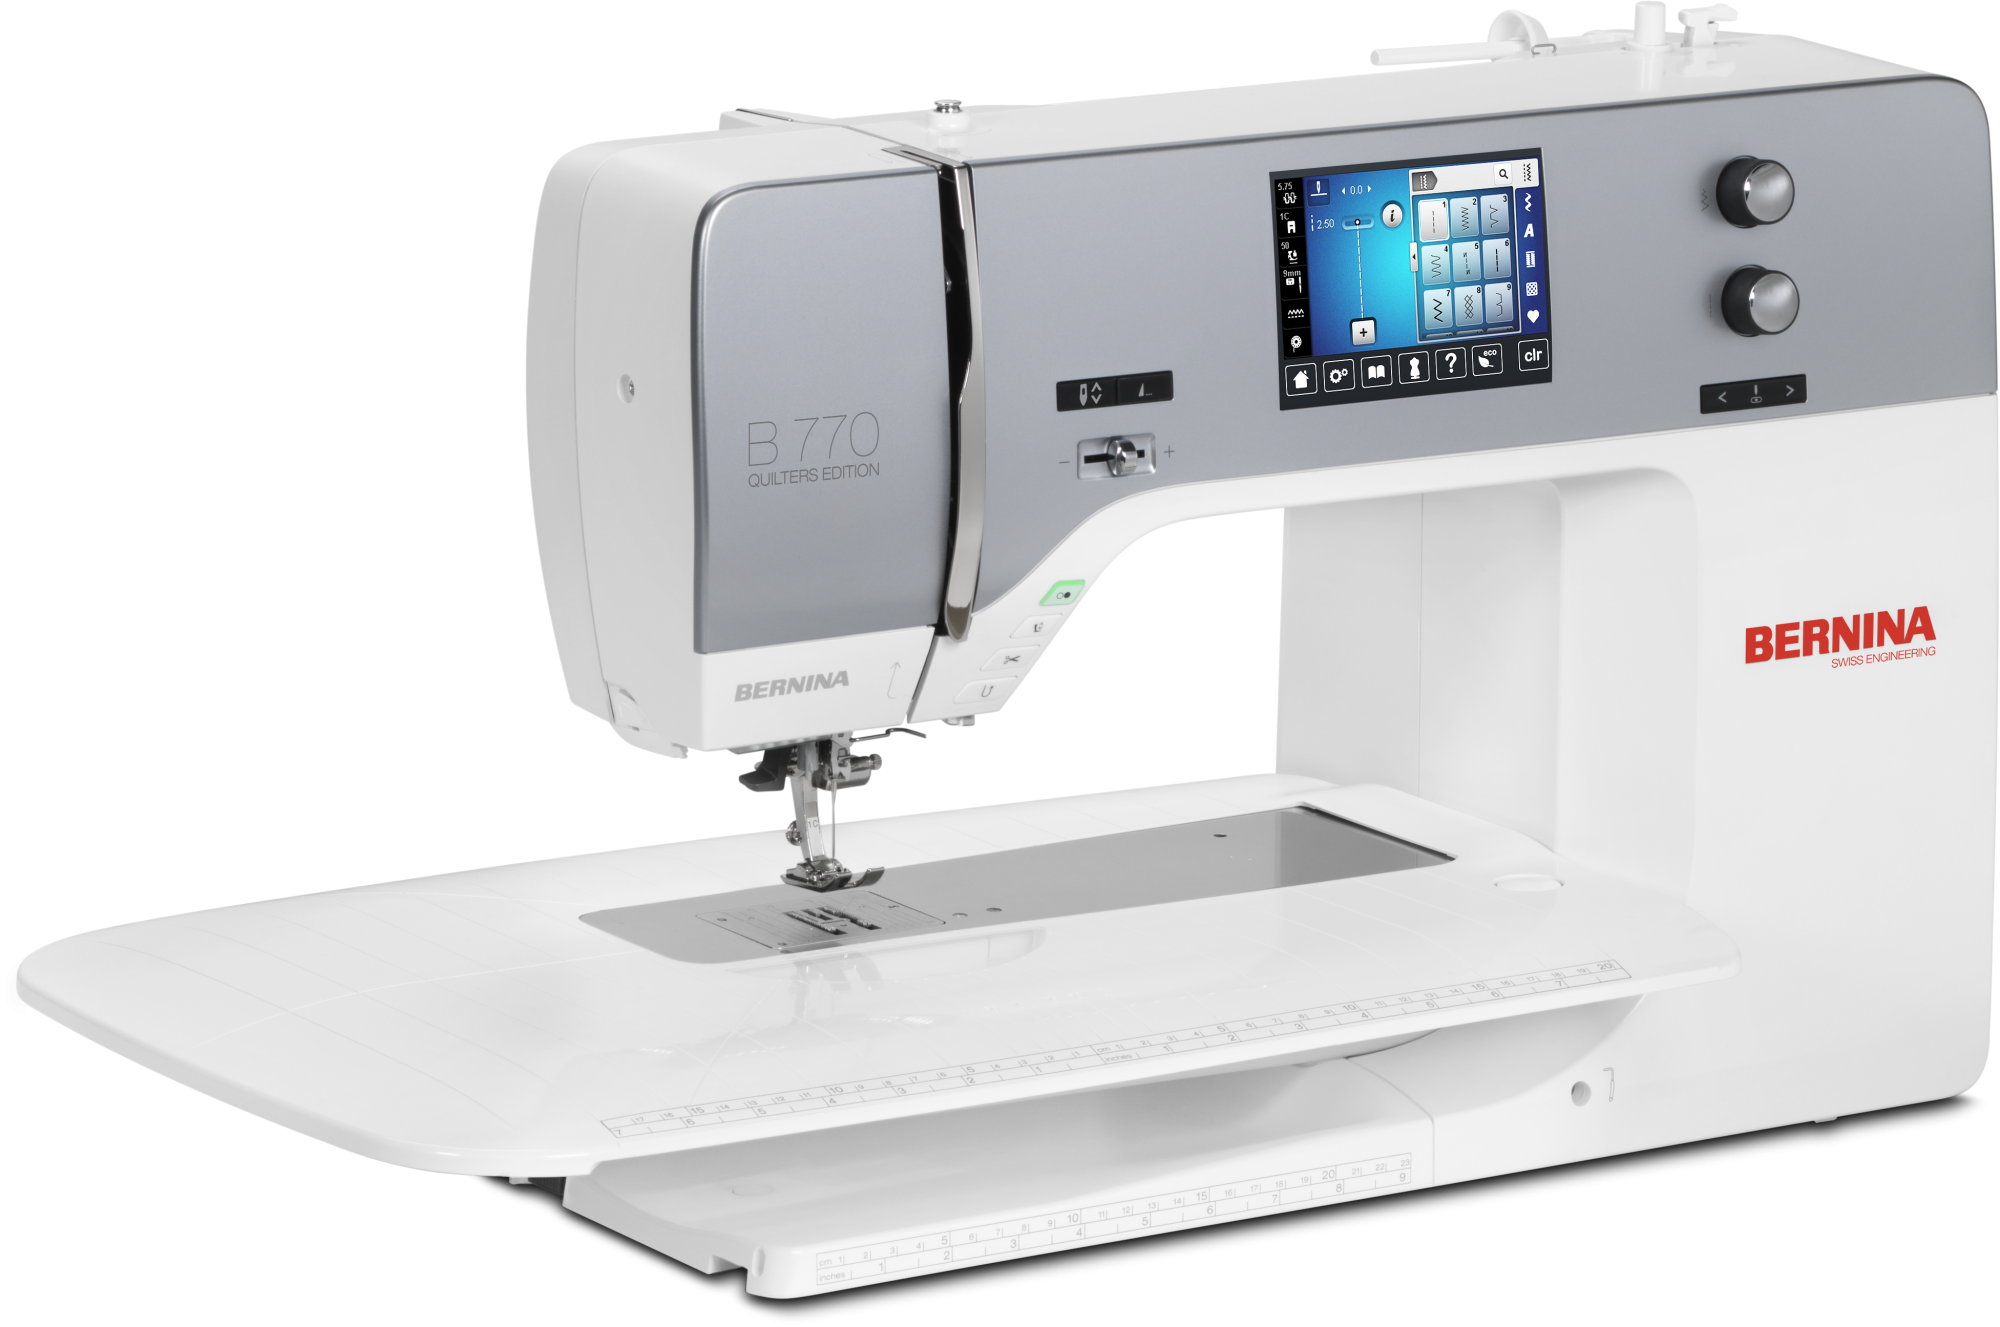 Sewing And Embroidery Machine Store In Myrtle Beach Sc